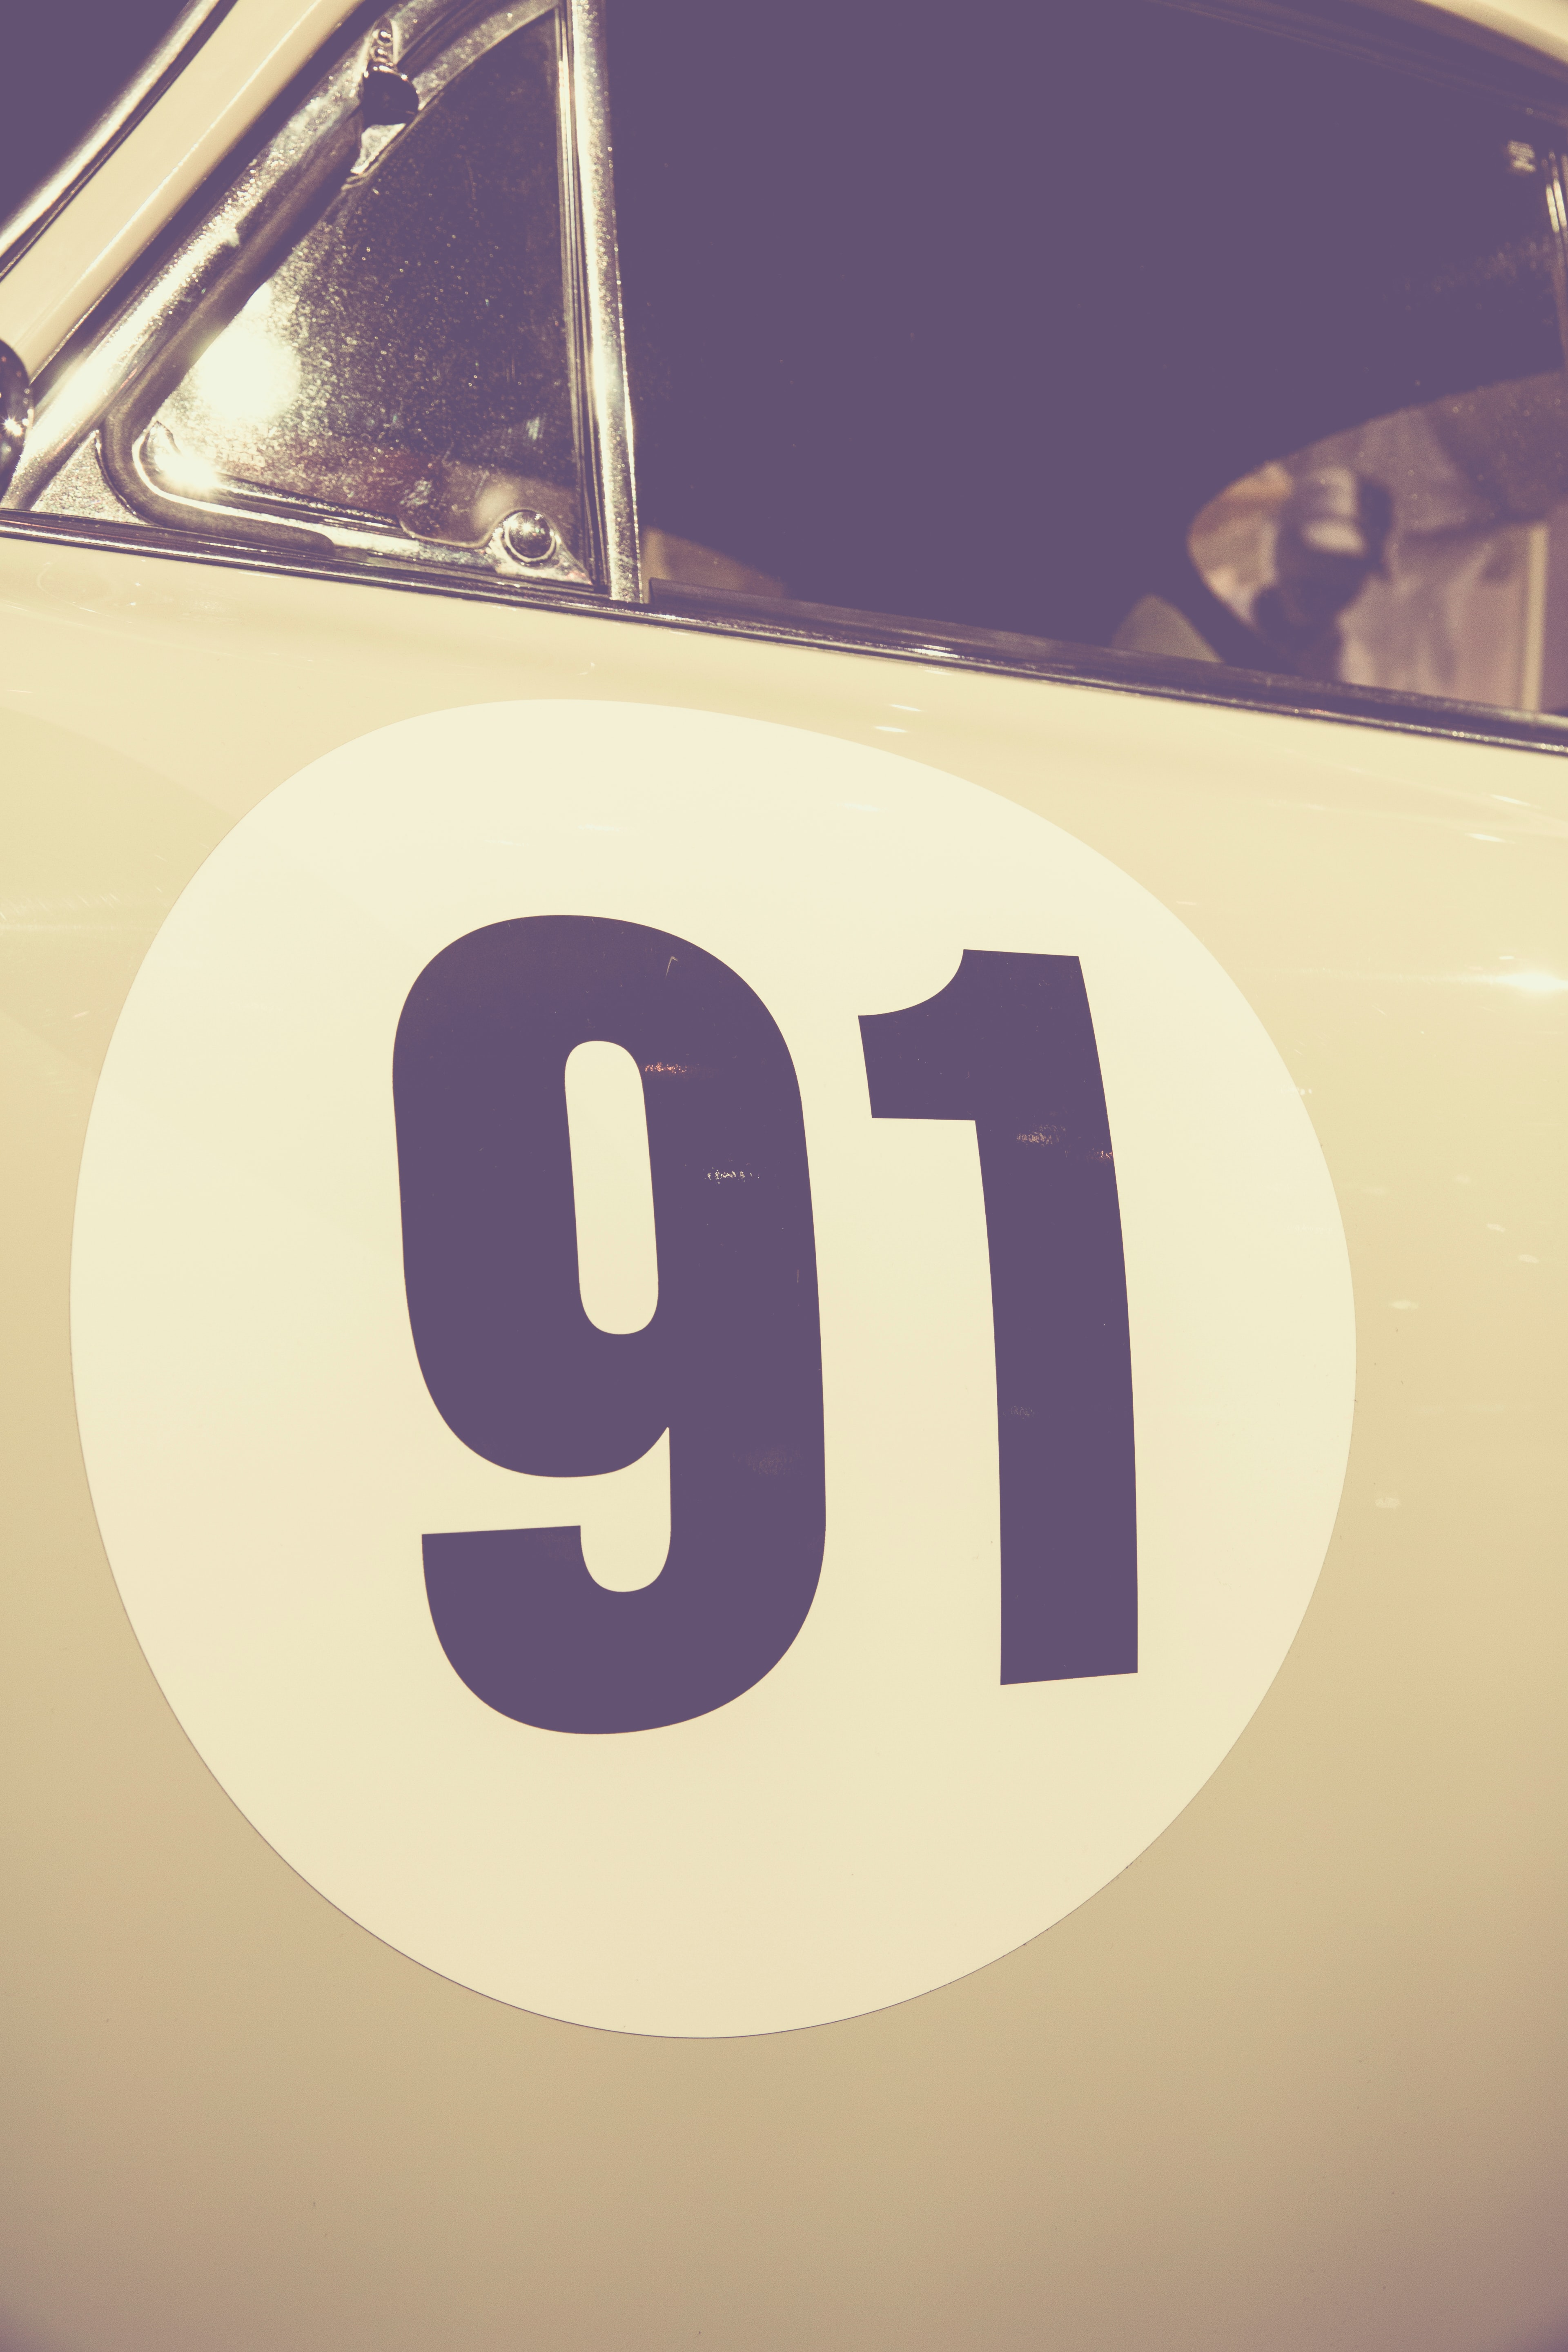 A car with a 91 decal on the driver's door.